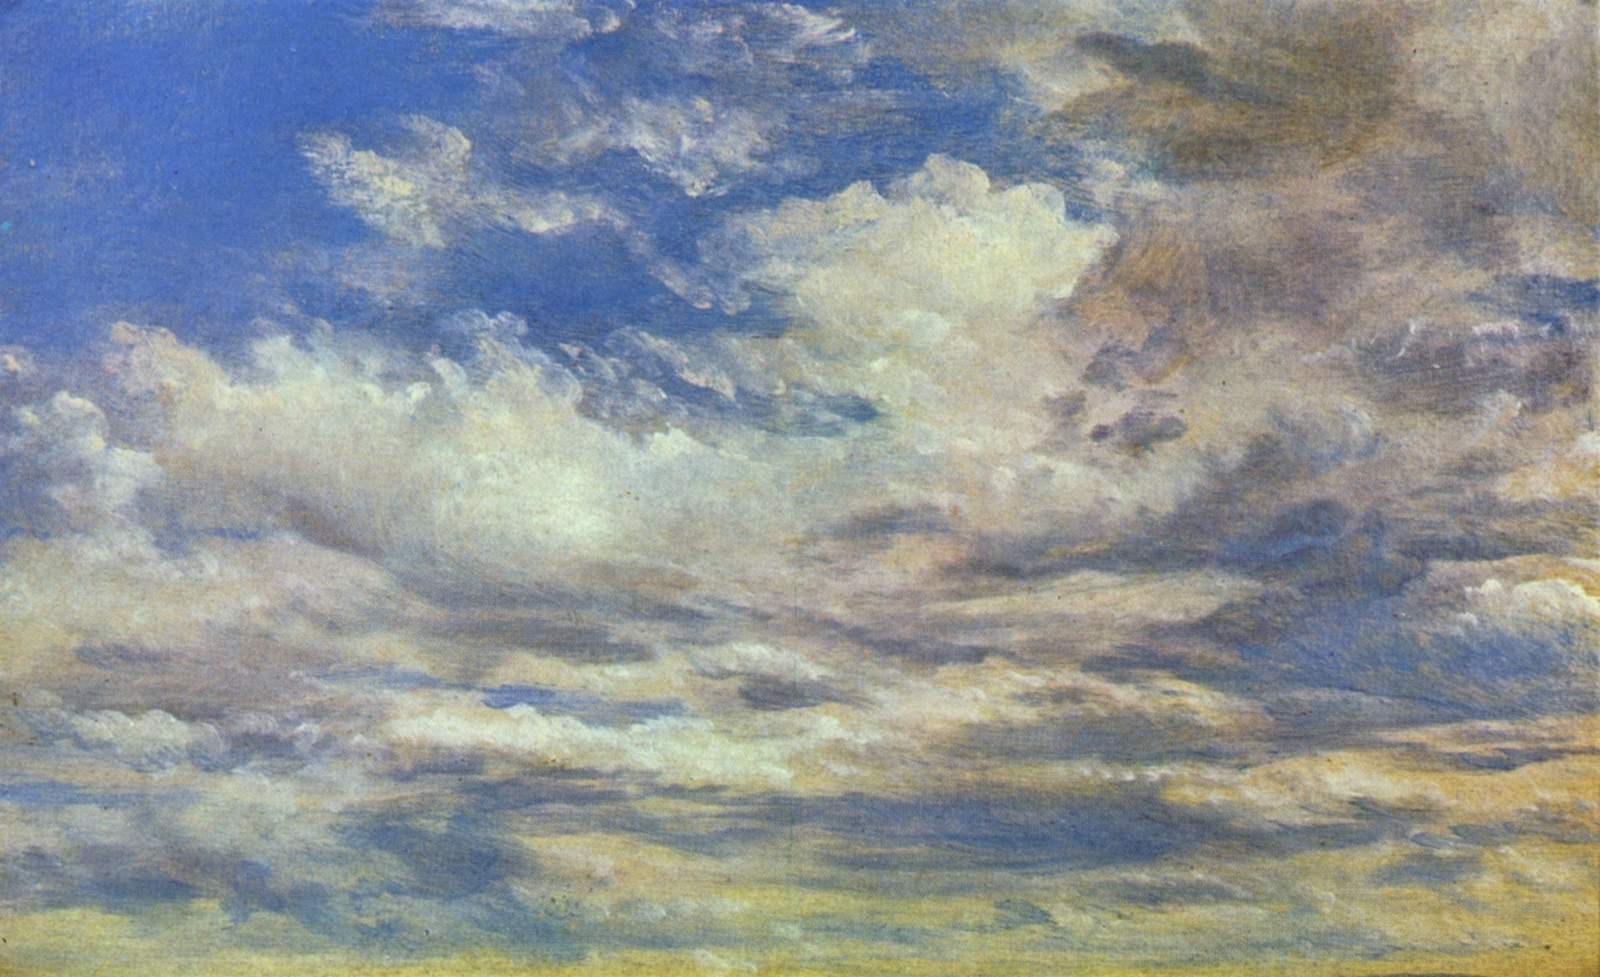 Cloud Study - John Constable - WikiArt.org - encyclopedia of visual arts